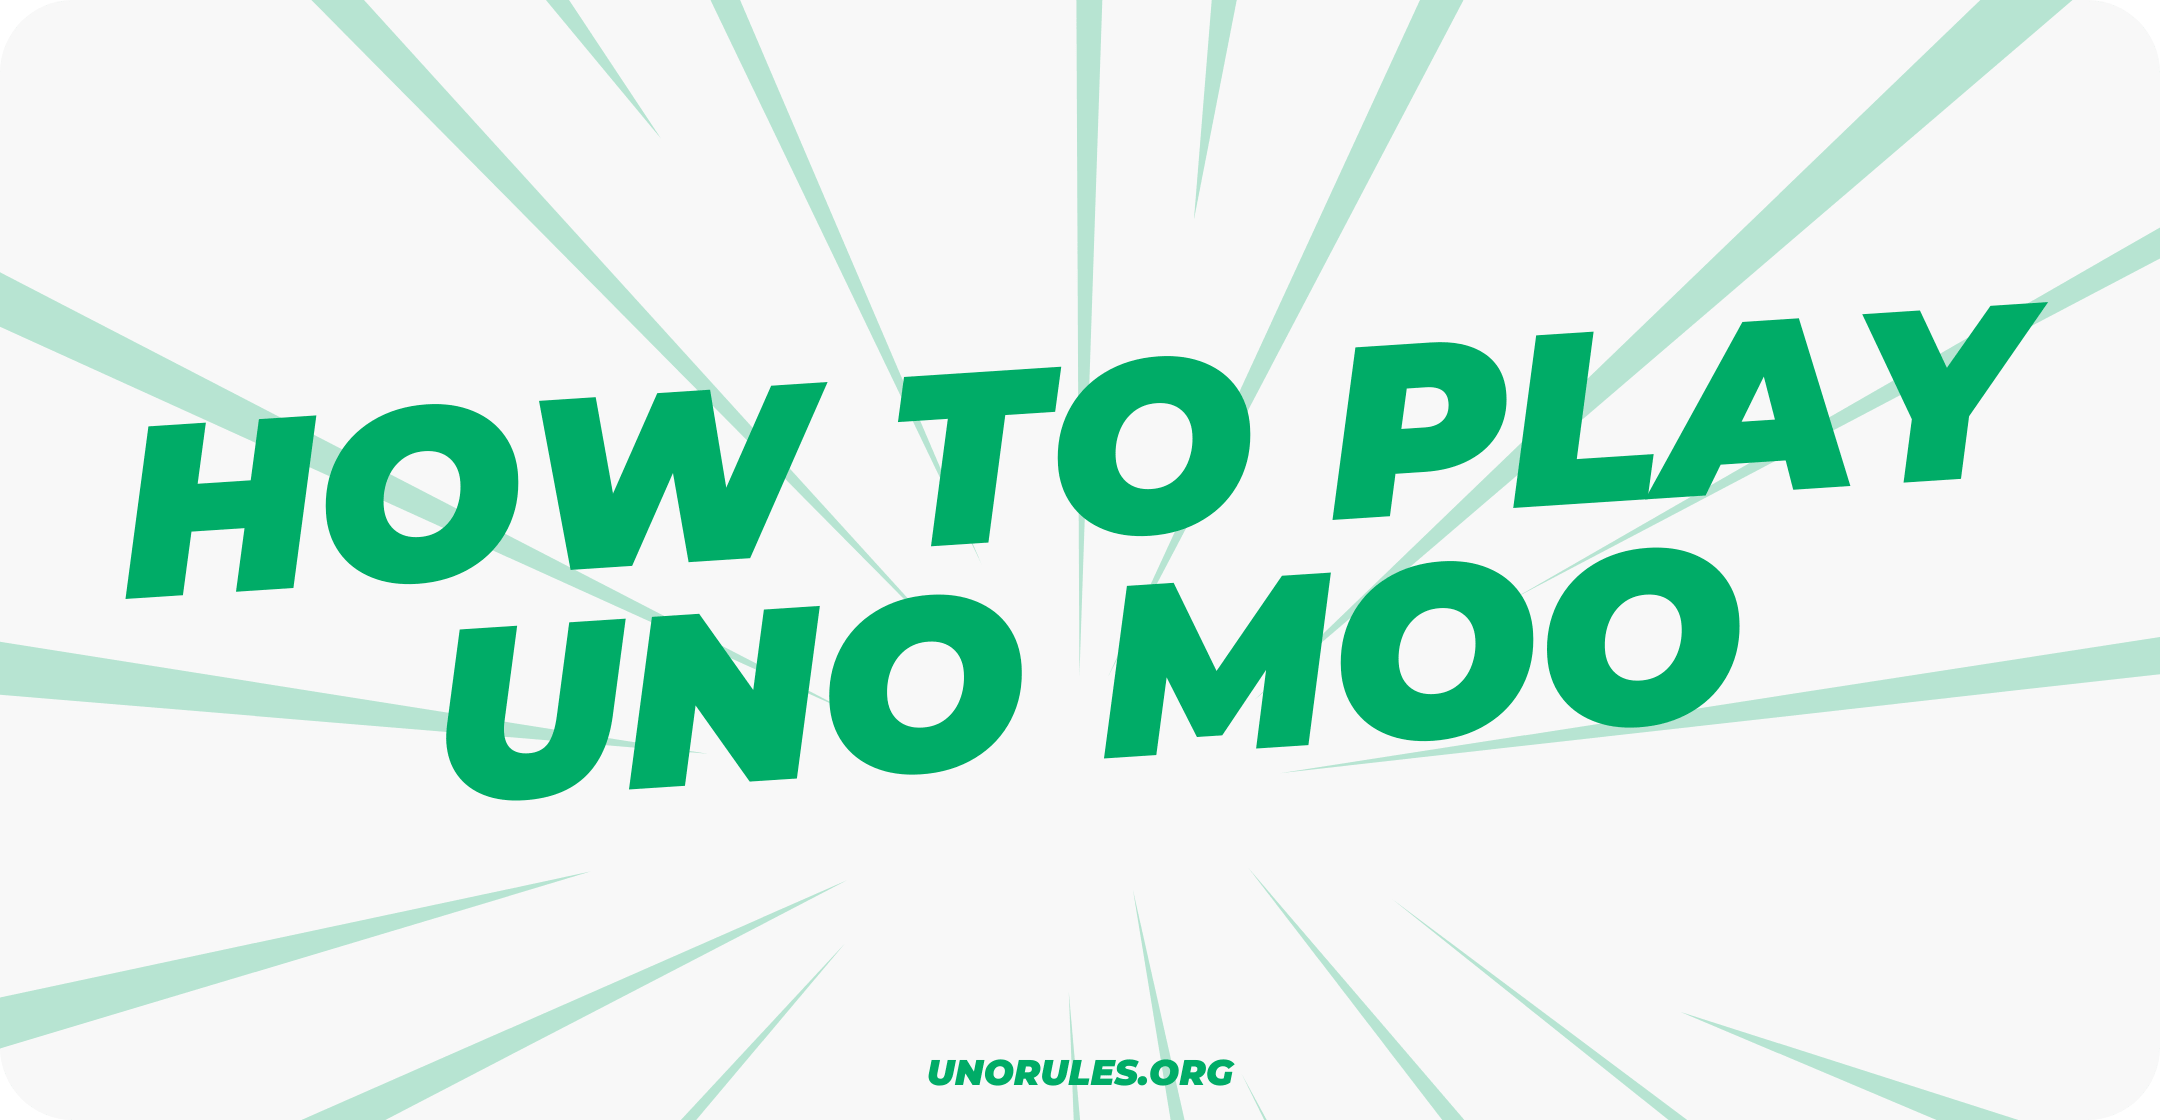 How to play uno moo